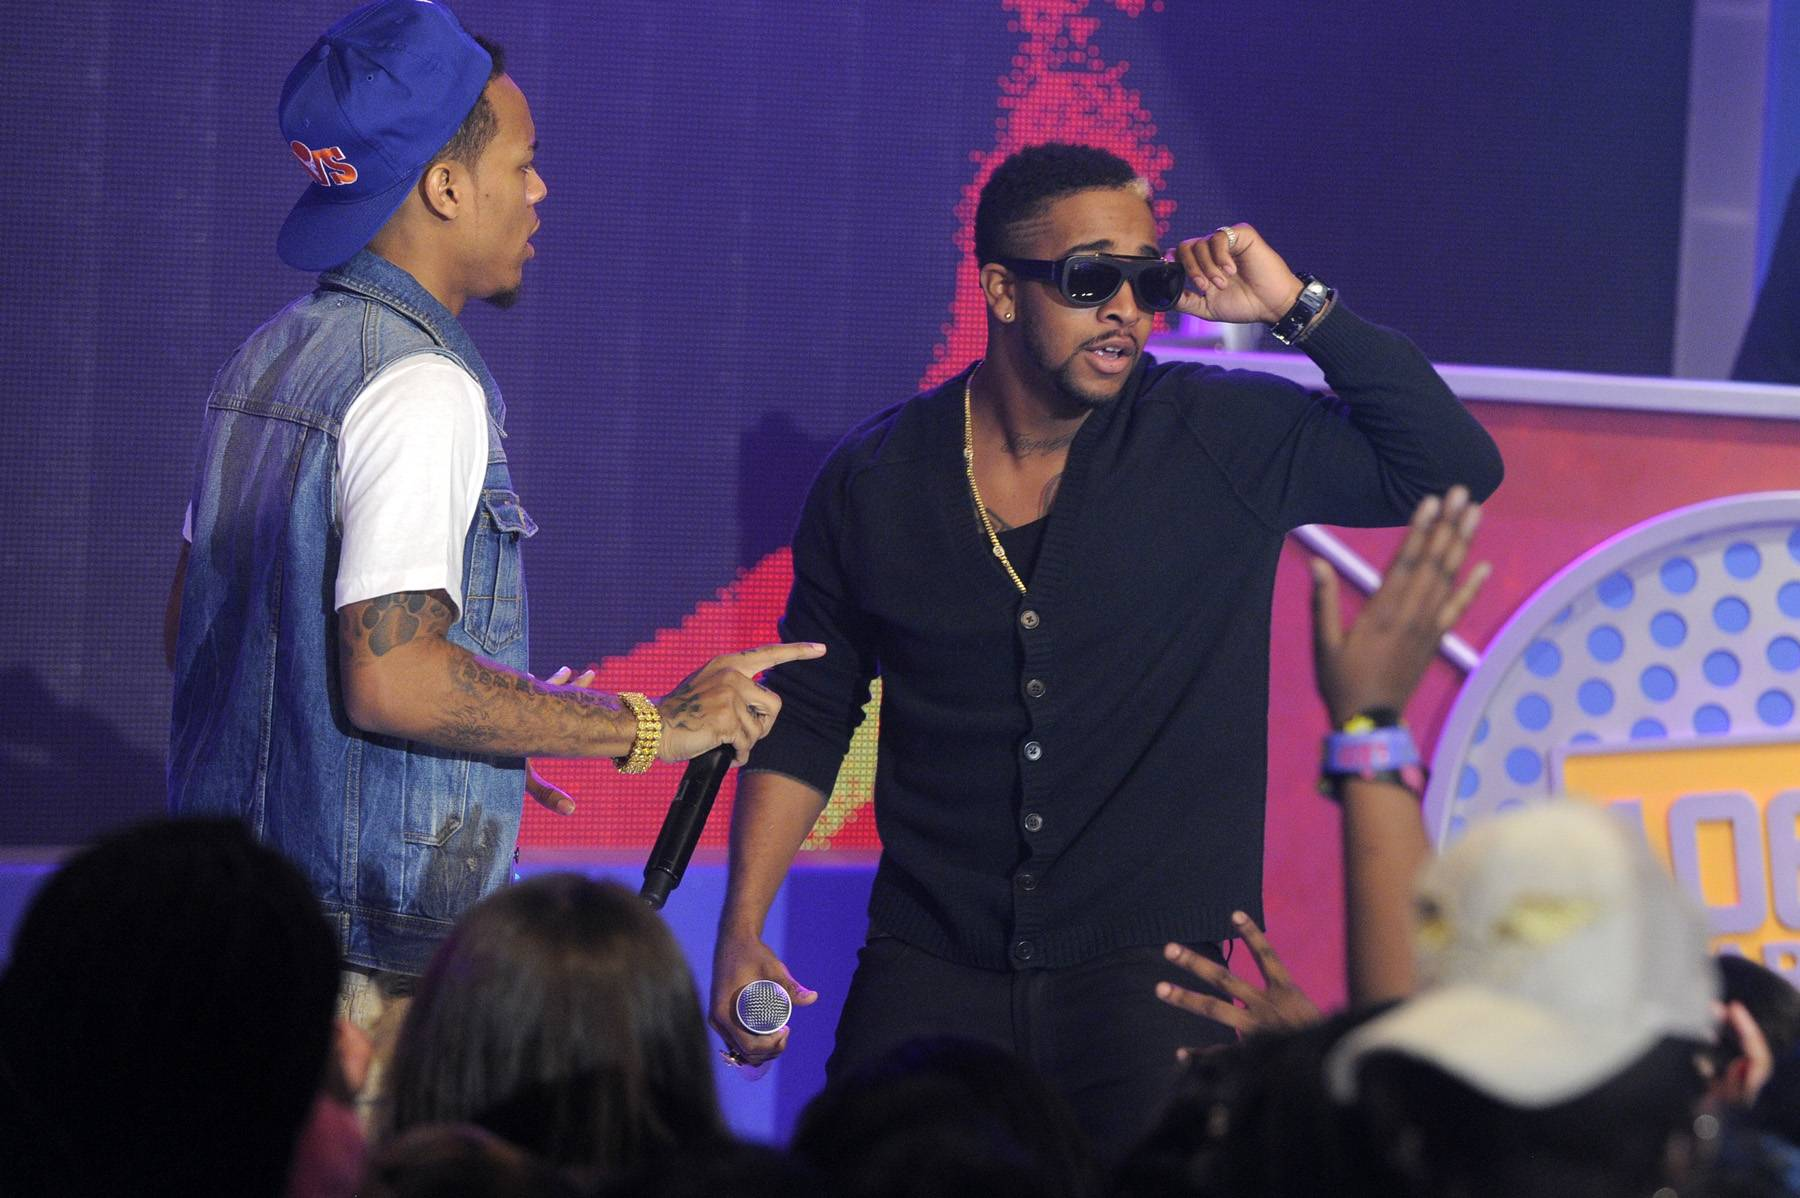 Back at It\r - Bow Wow and Omarion perform at 106 & Park, January 23, 2012. (Photo: John Ricard / BET)